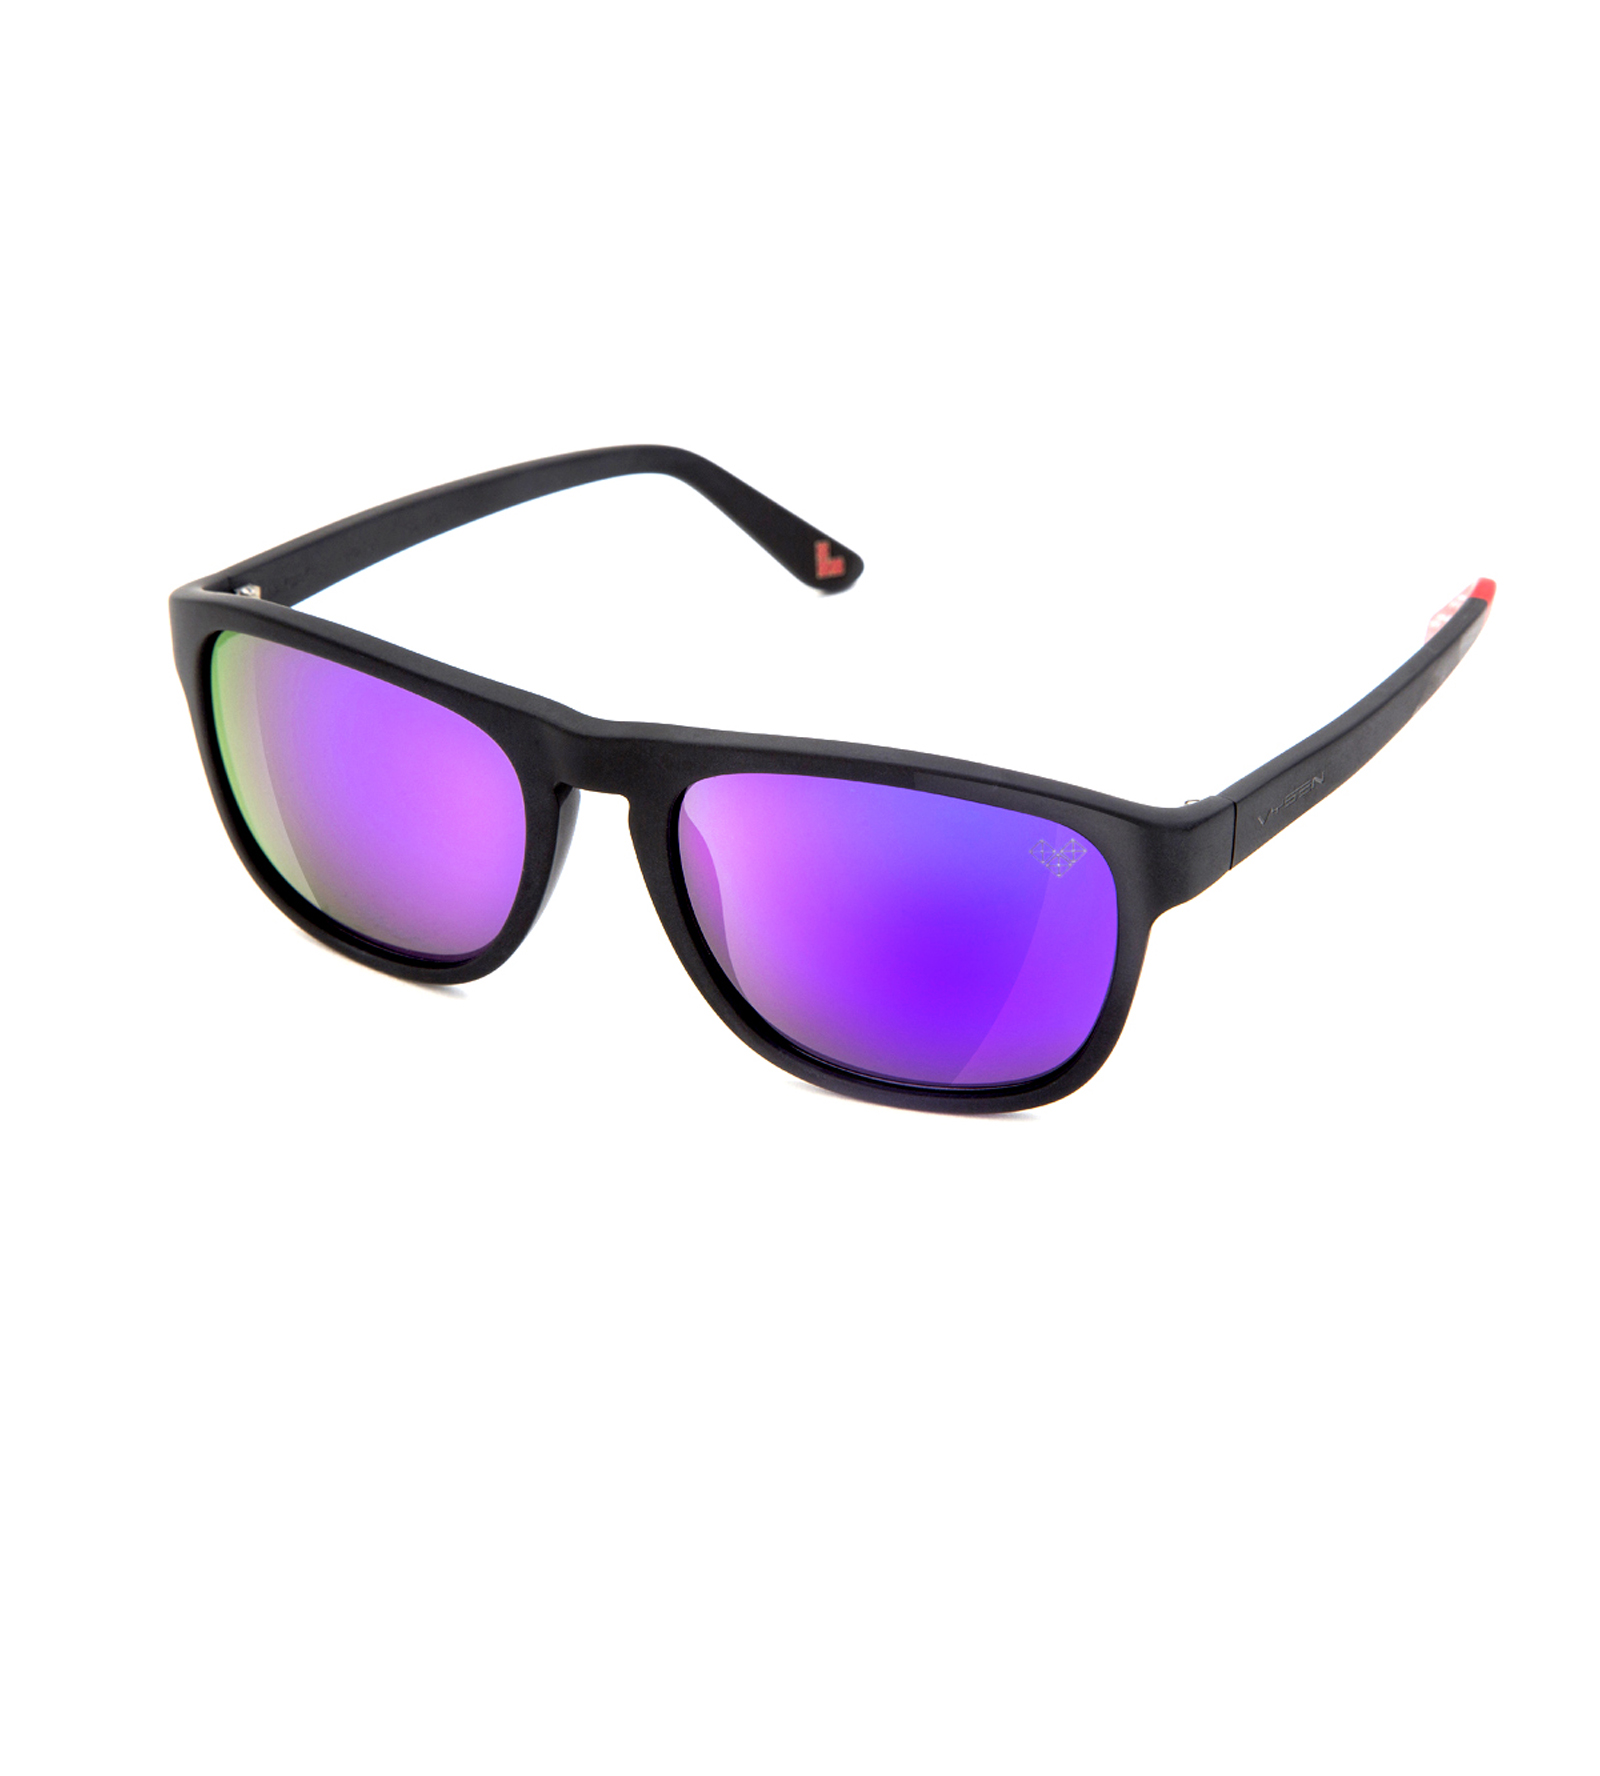 MAYDAY-Md6P-P with Purple Mirror Polarized Lenses